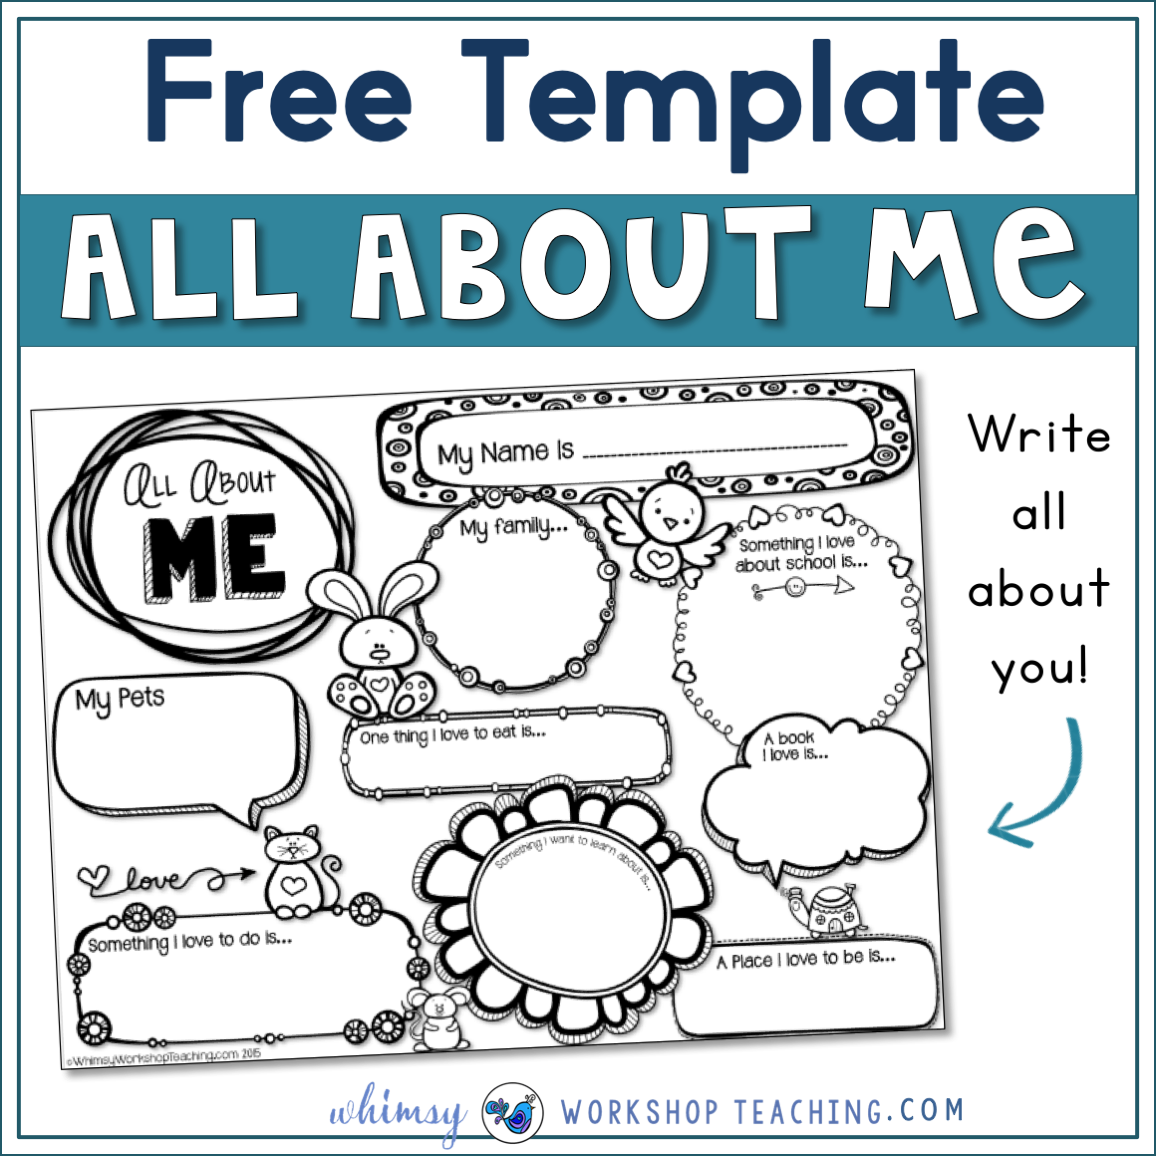 About Me Writing Template - Whimsy Workshop Teaching